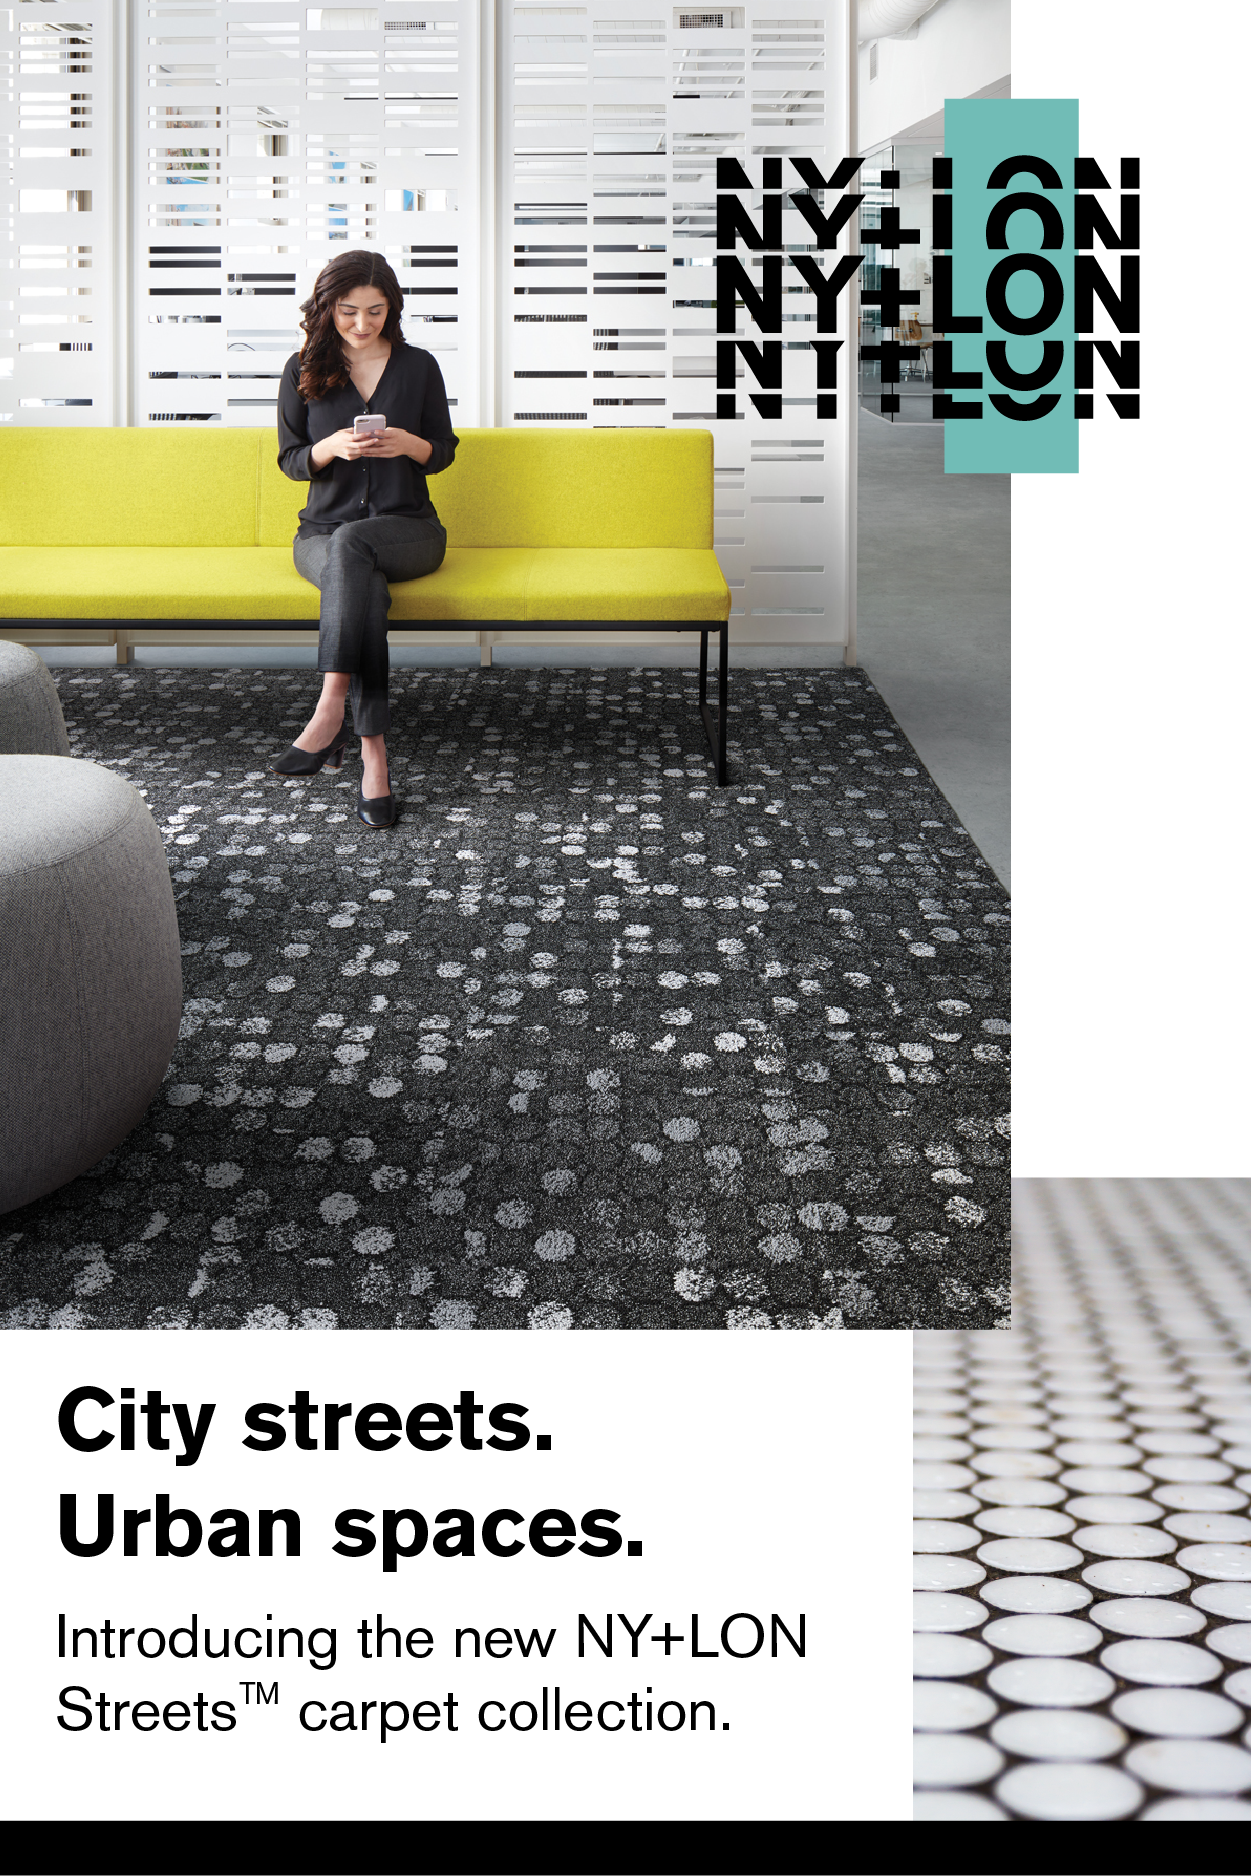 Create A Modern Environment That S Both Sustainable And On Trend Inspired By Two Iconic Cities In 2020 With Images Street Design How To Clean Carpet Modern Architecture Building